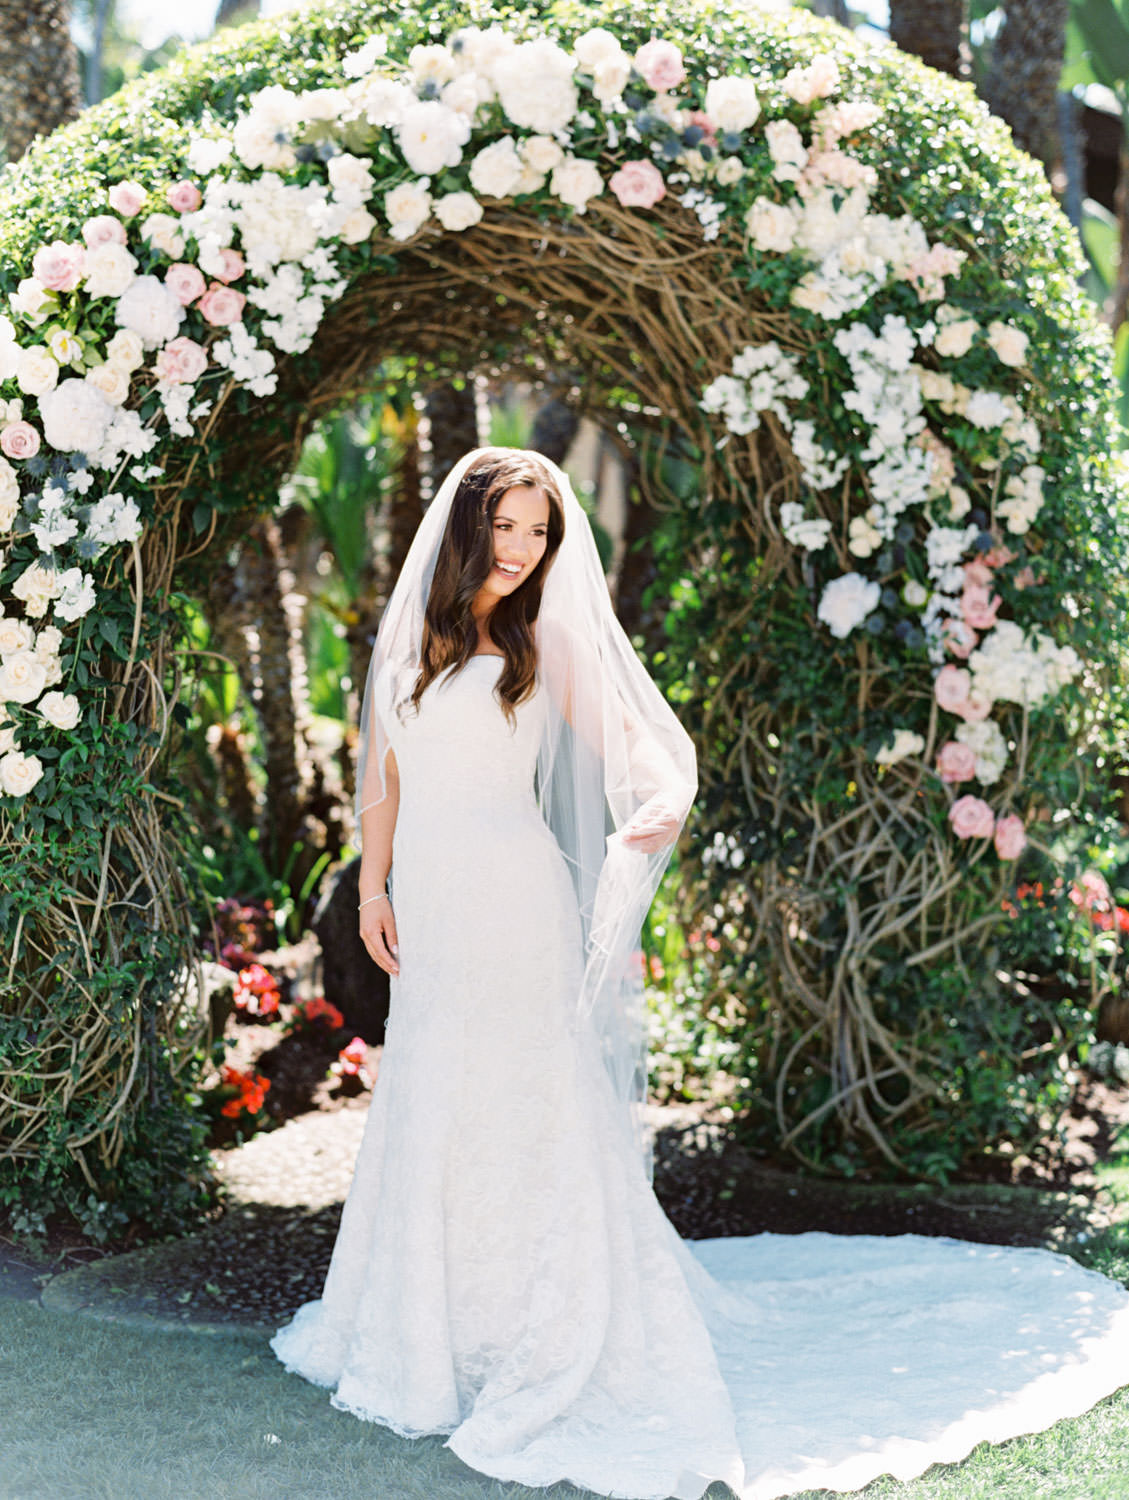 Bridal portrait with veil and train in front of floral arch on film. Wedding at Humphreys Half Moon Inn by Cavin Elizabeth Photography